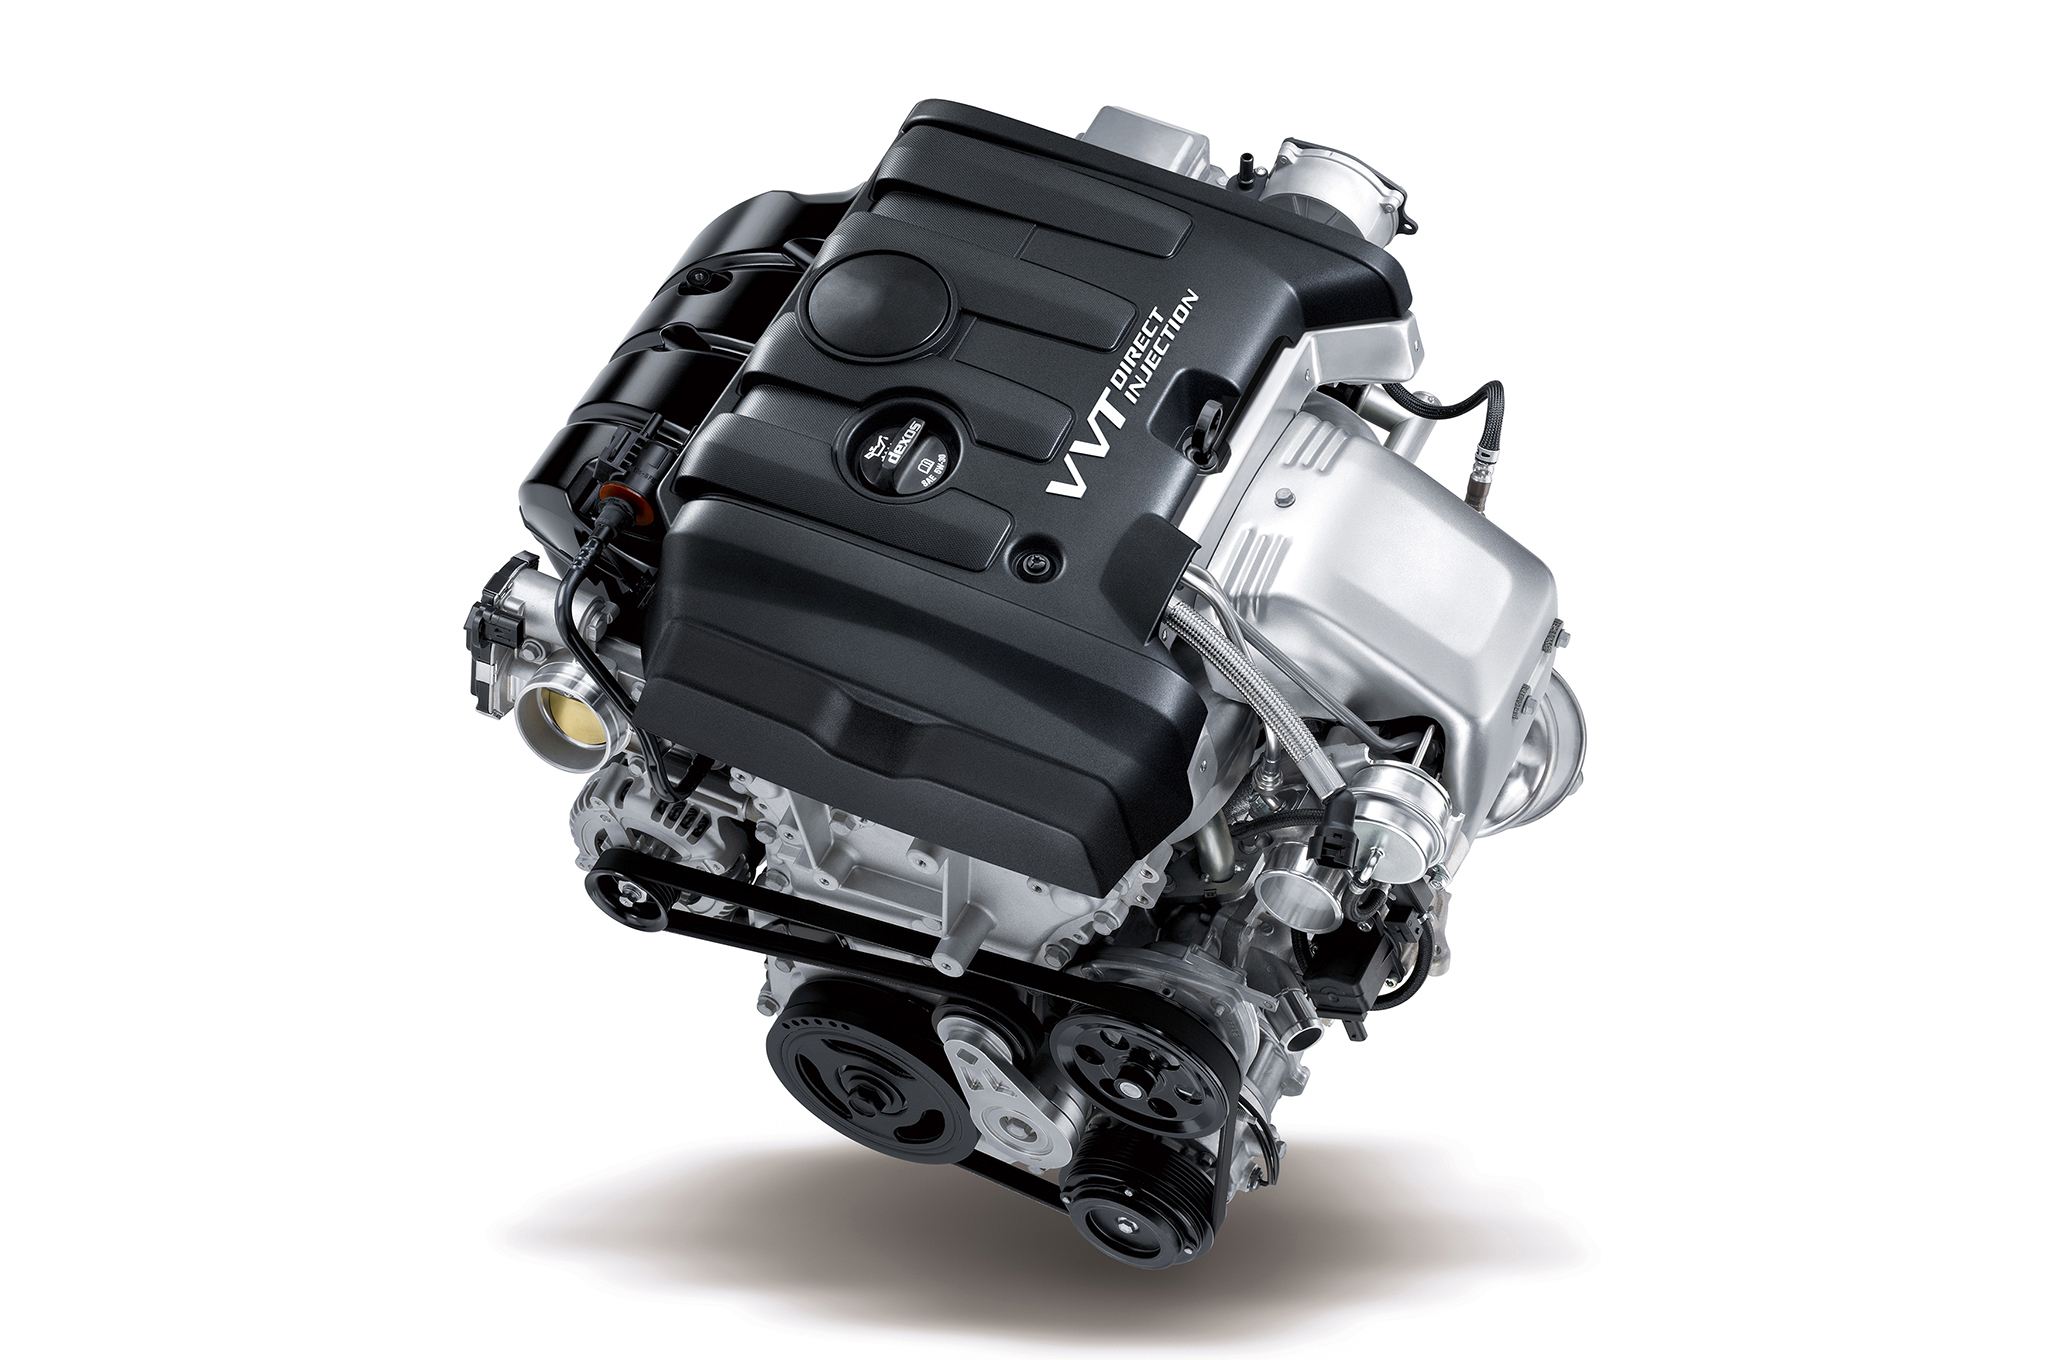 This 2.0L turbo four is the Camaro LT's standard engine. It produces 275 hp by generating up to 20 psi of boost with a twin-scroll turbocharger system. It's built tough, too, with a forged, cross-drilled crank and forged rods.